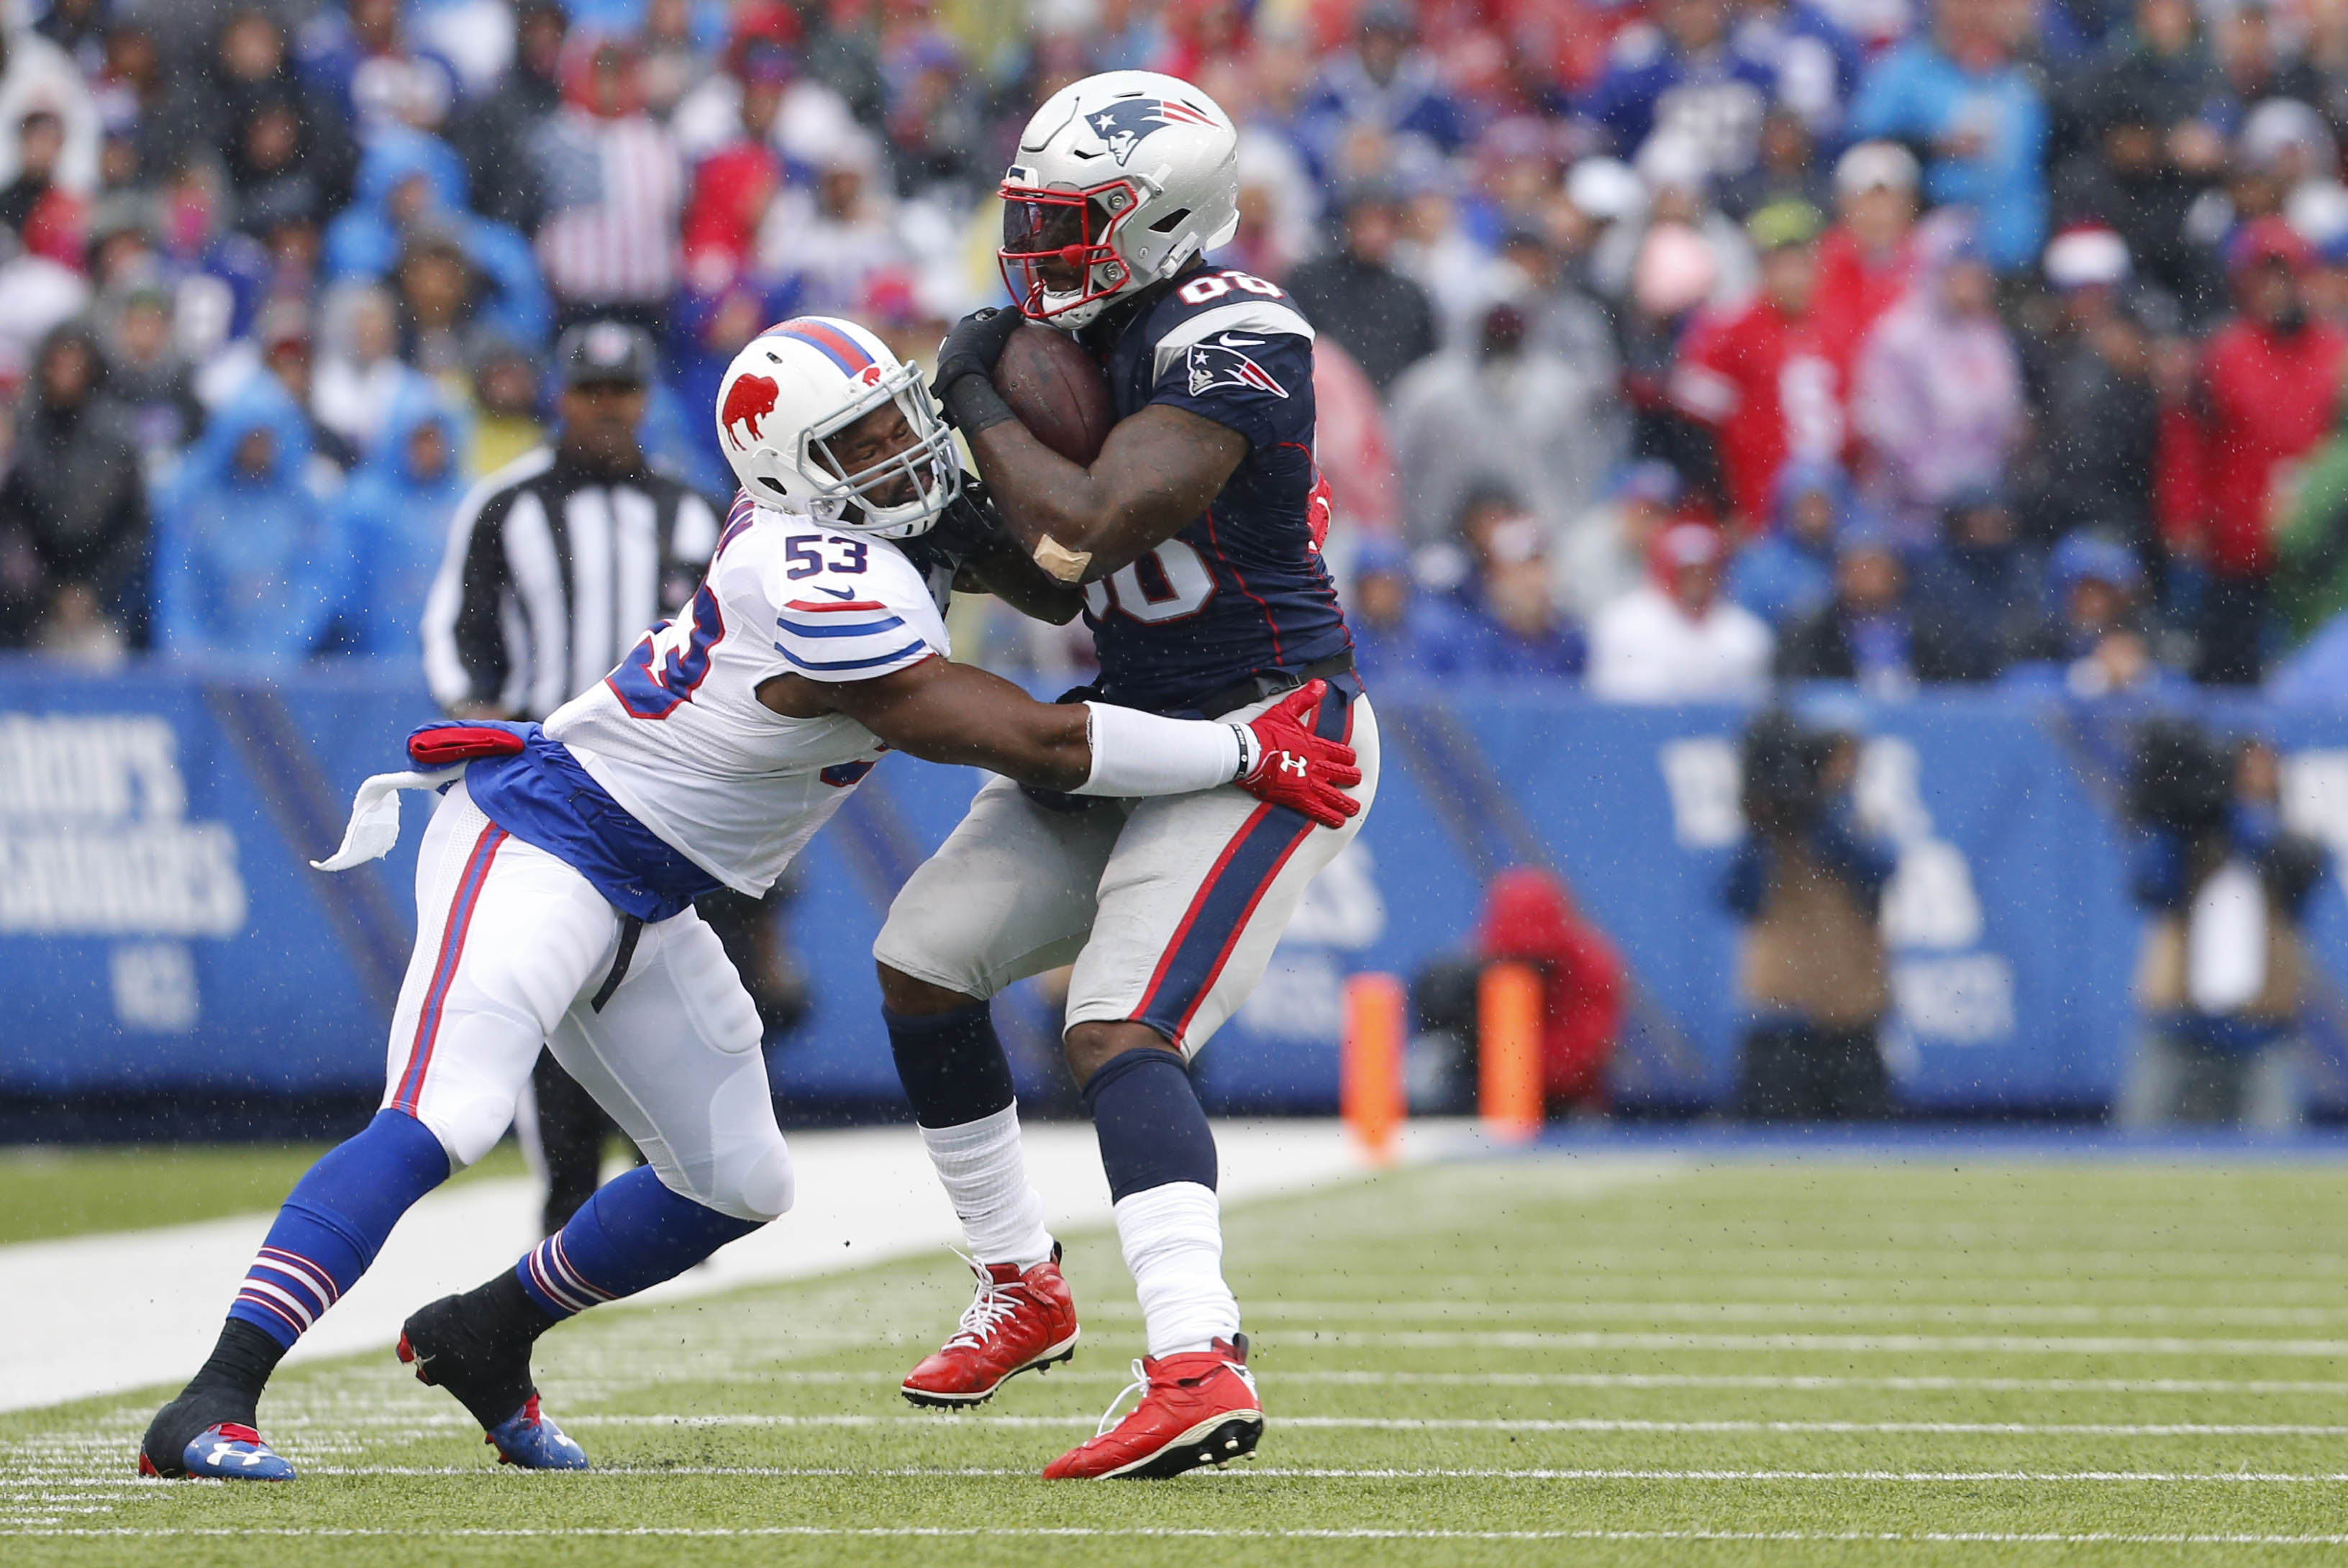 Zach Brown has emerged as the leading tackler on the Bills and leads a strong linebacker corps (Mark Mulville/Buffalo News).